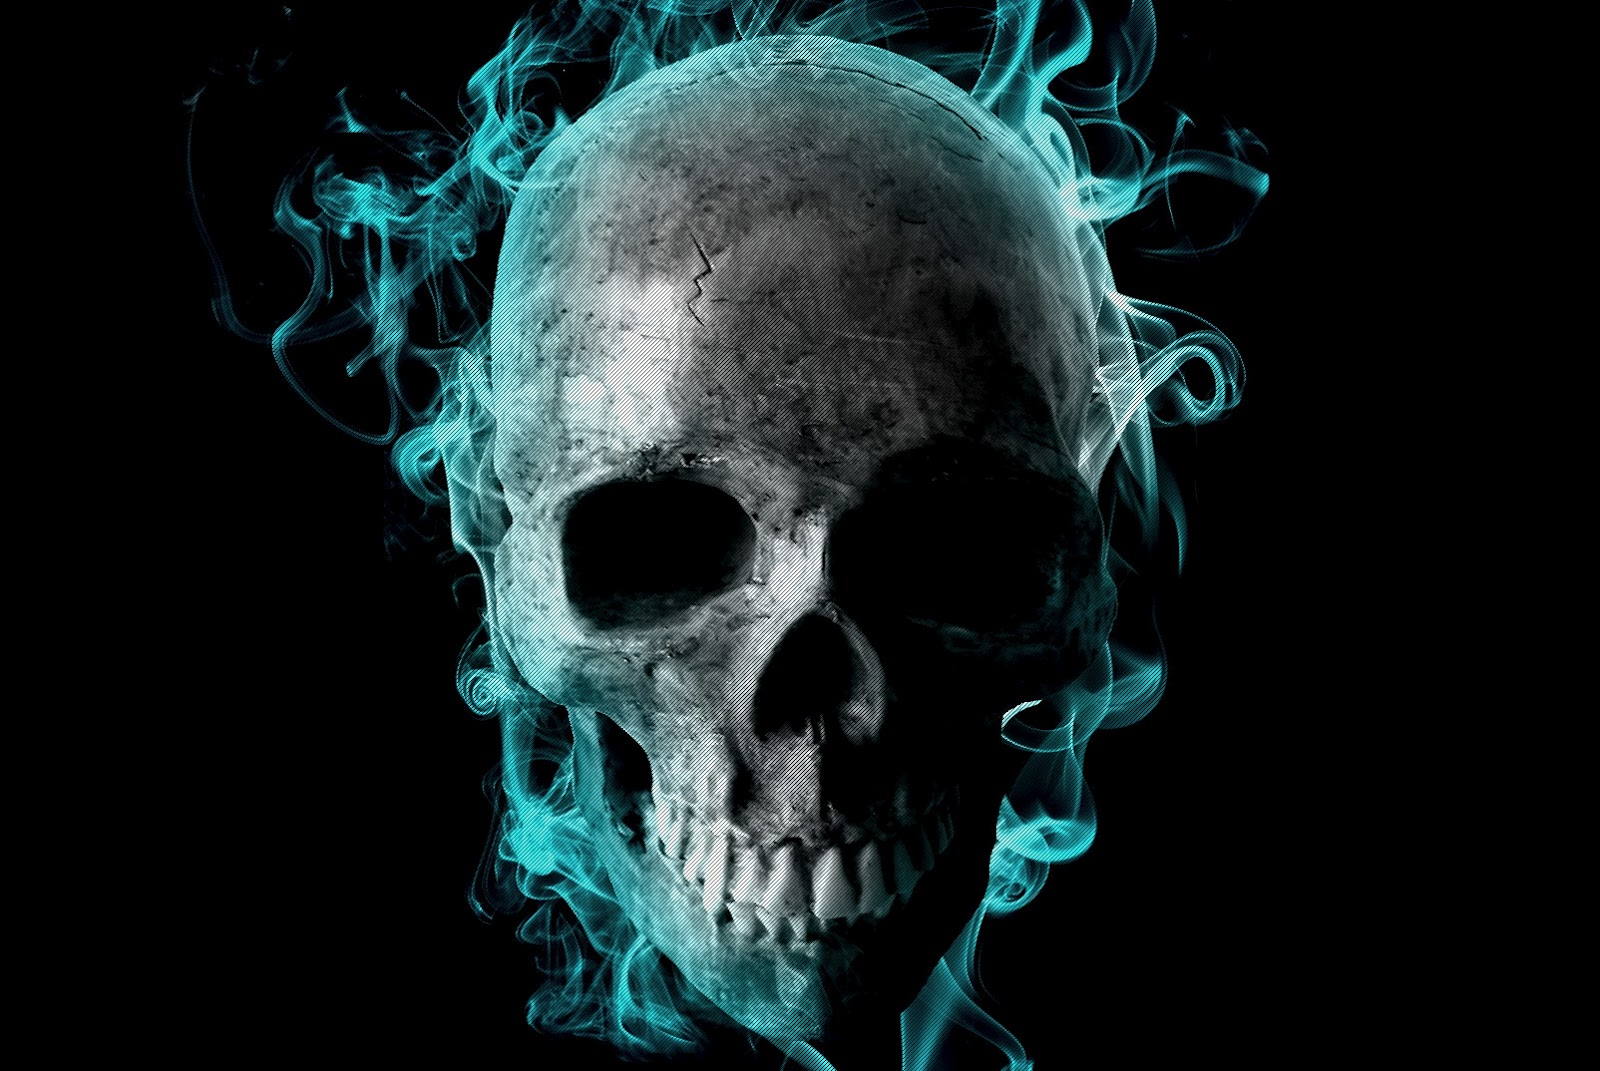 Skull Wallpaper Wallpapers HD Wallpapers Download Free Images Wallpaper [1000image.com]